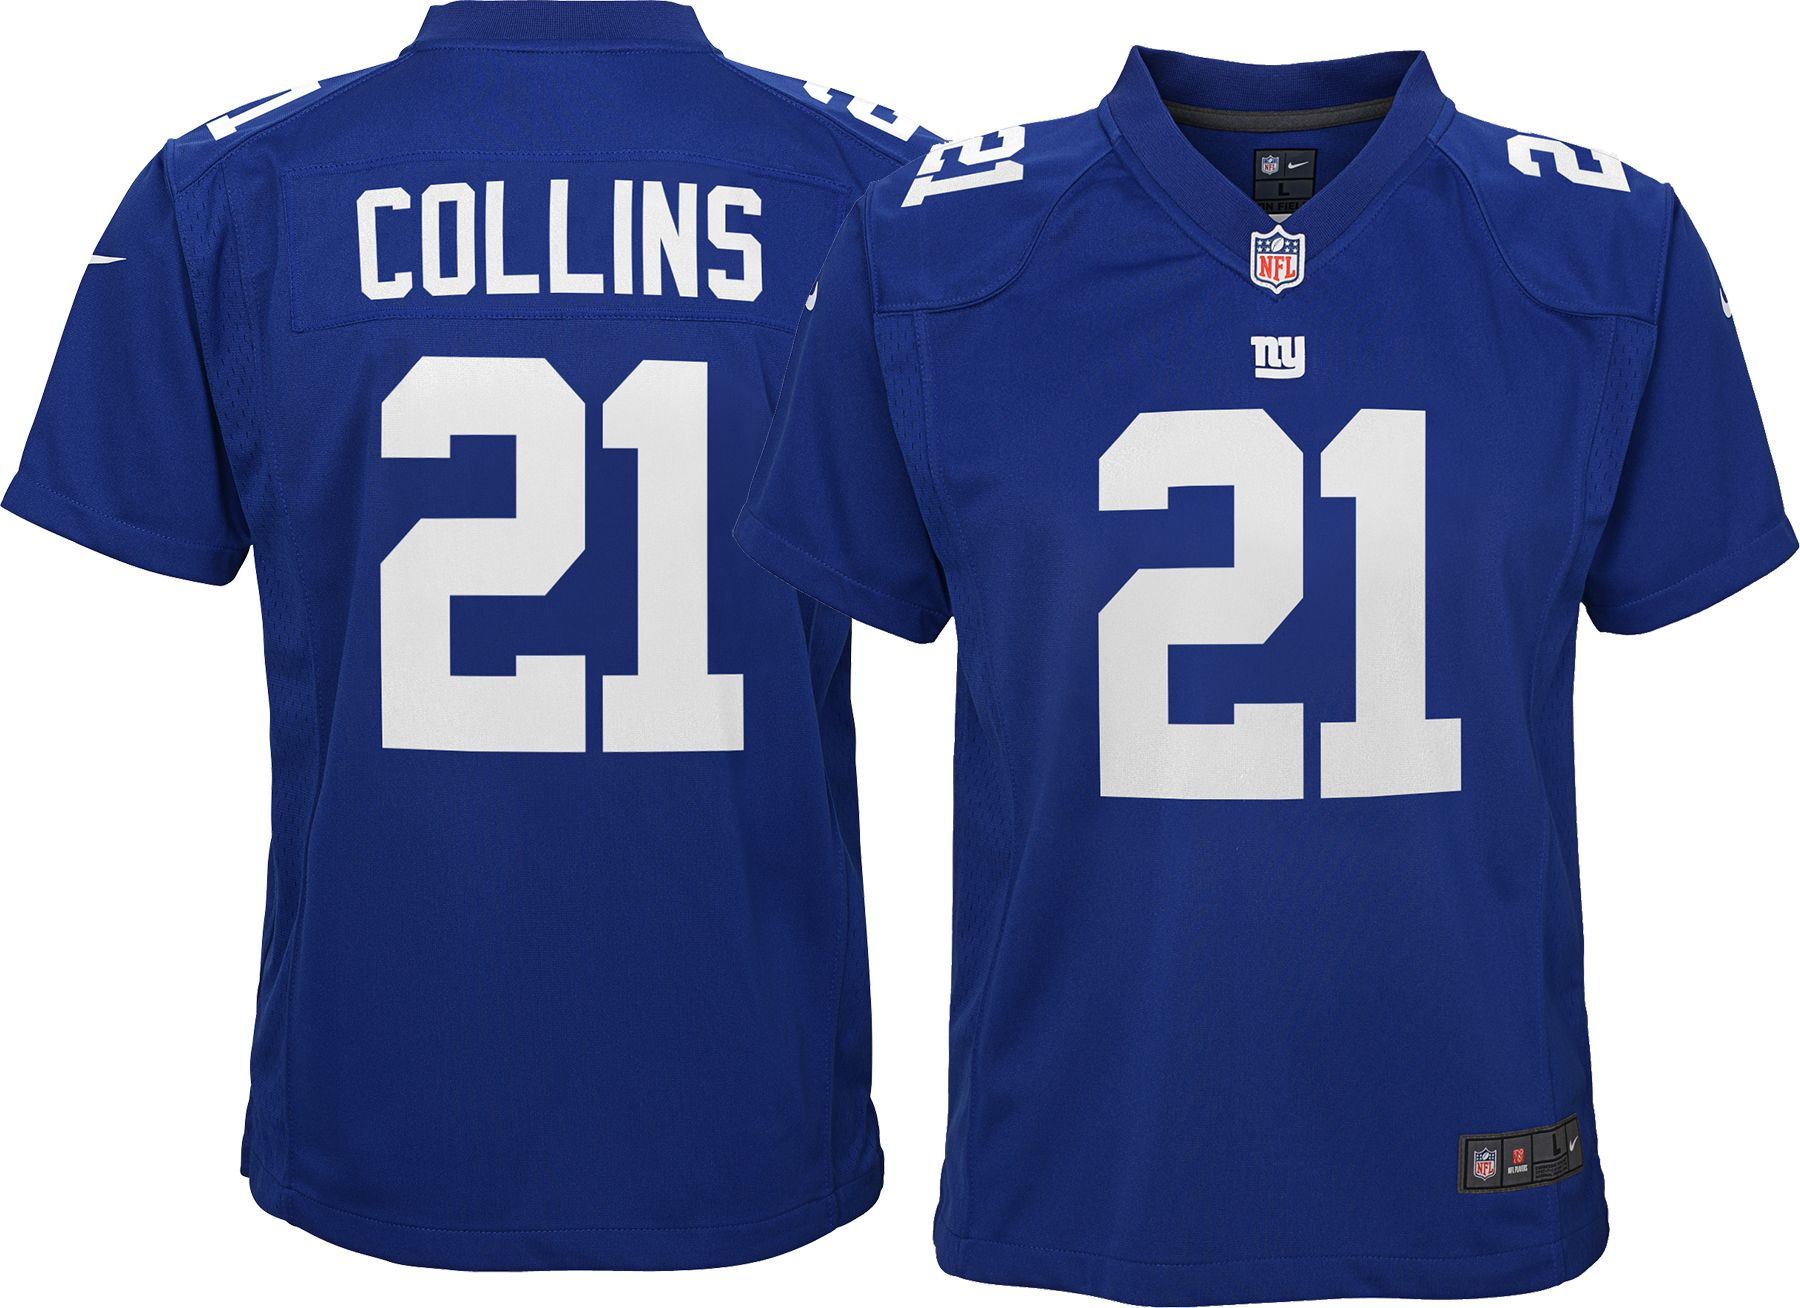 799757c95 Nike Youth Home Game Jersey New York Giants Landon Collins #21 ...